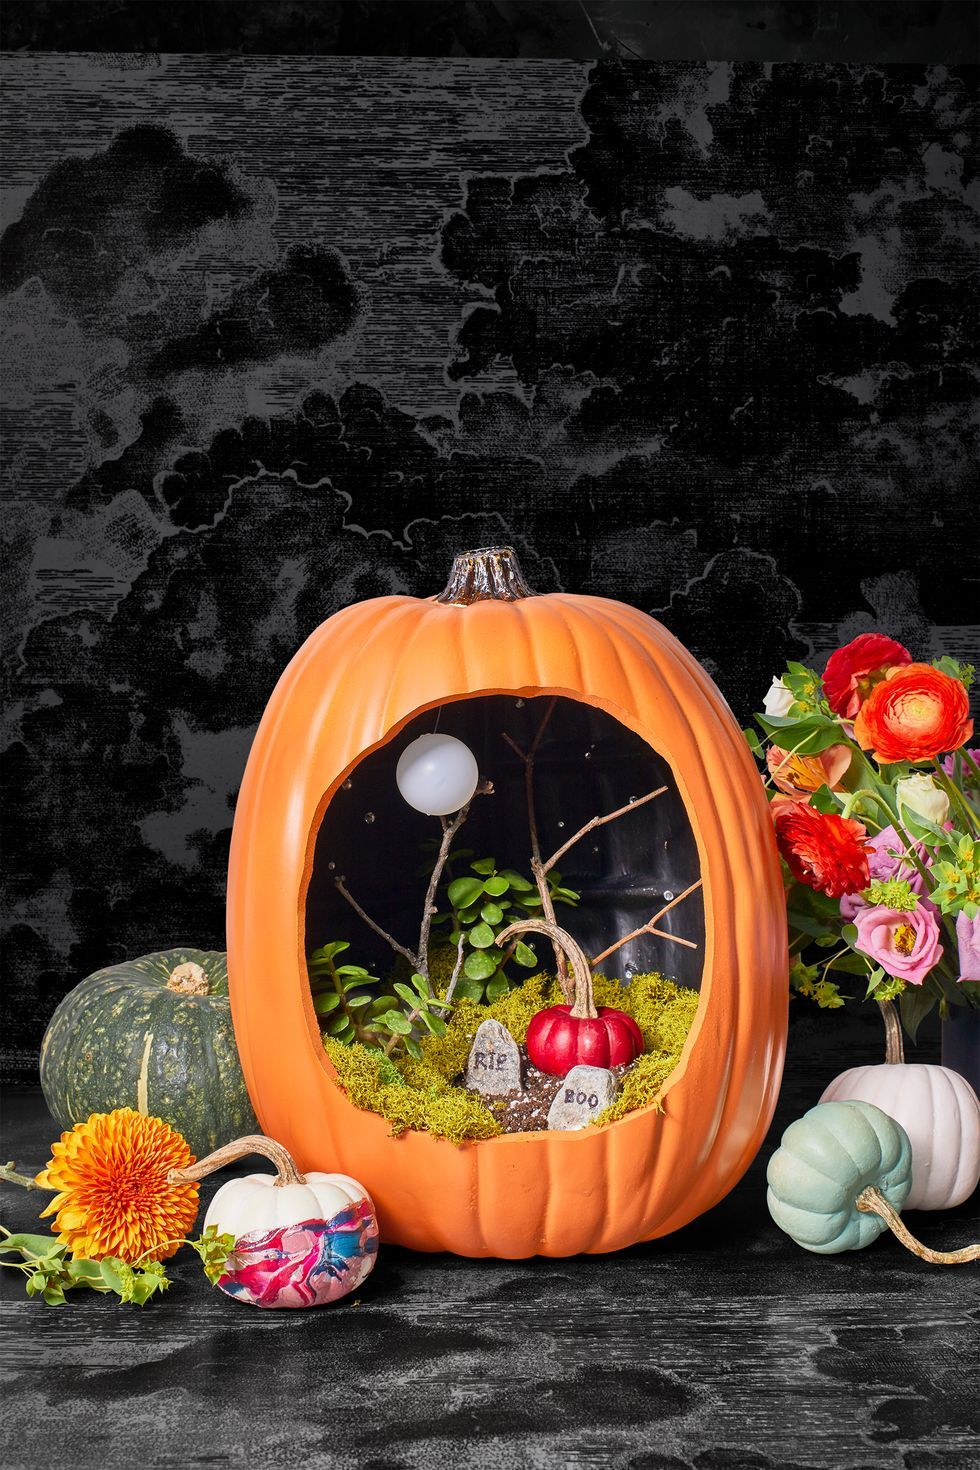 Celebrate the season with these frightfully fun decorating tricks. 87 Easy Diy Halloween Decorations 2021 Cute Halloween Decorating Ideas